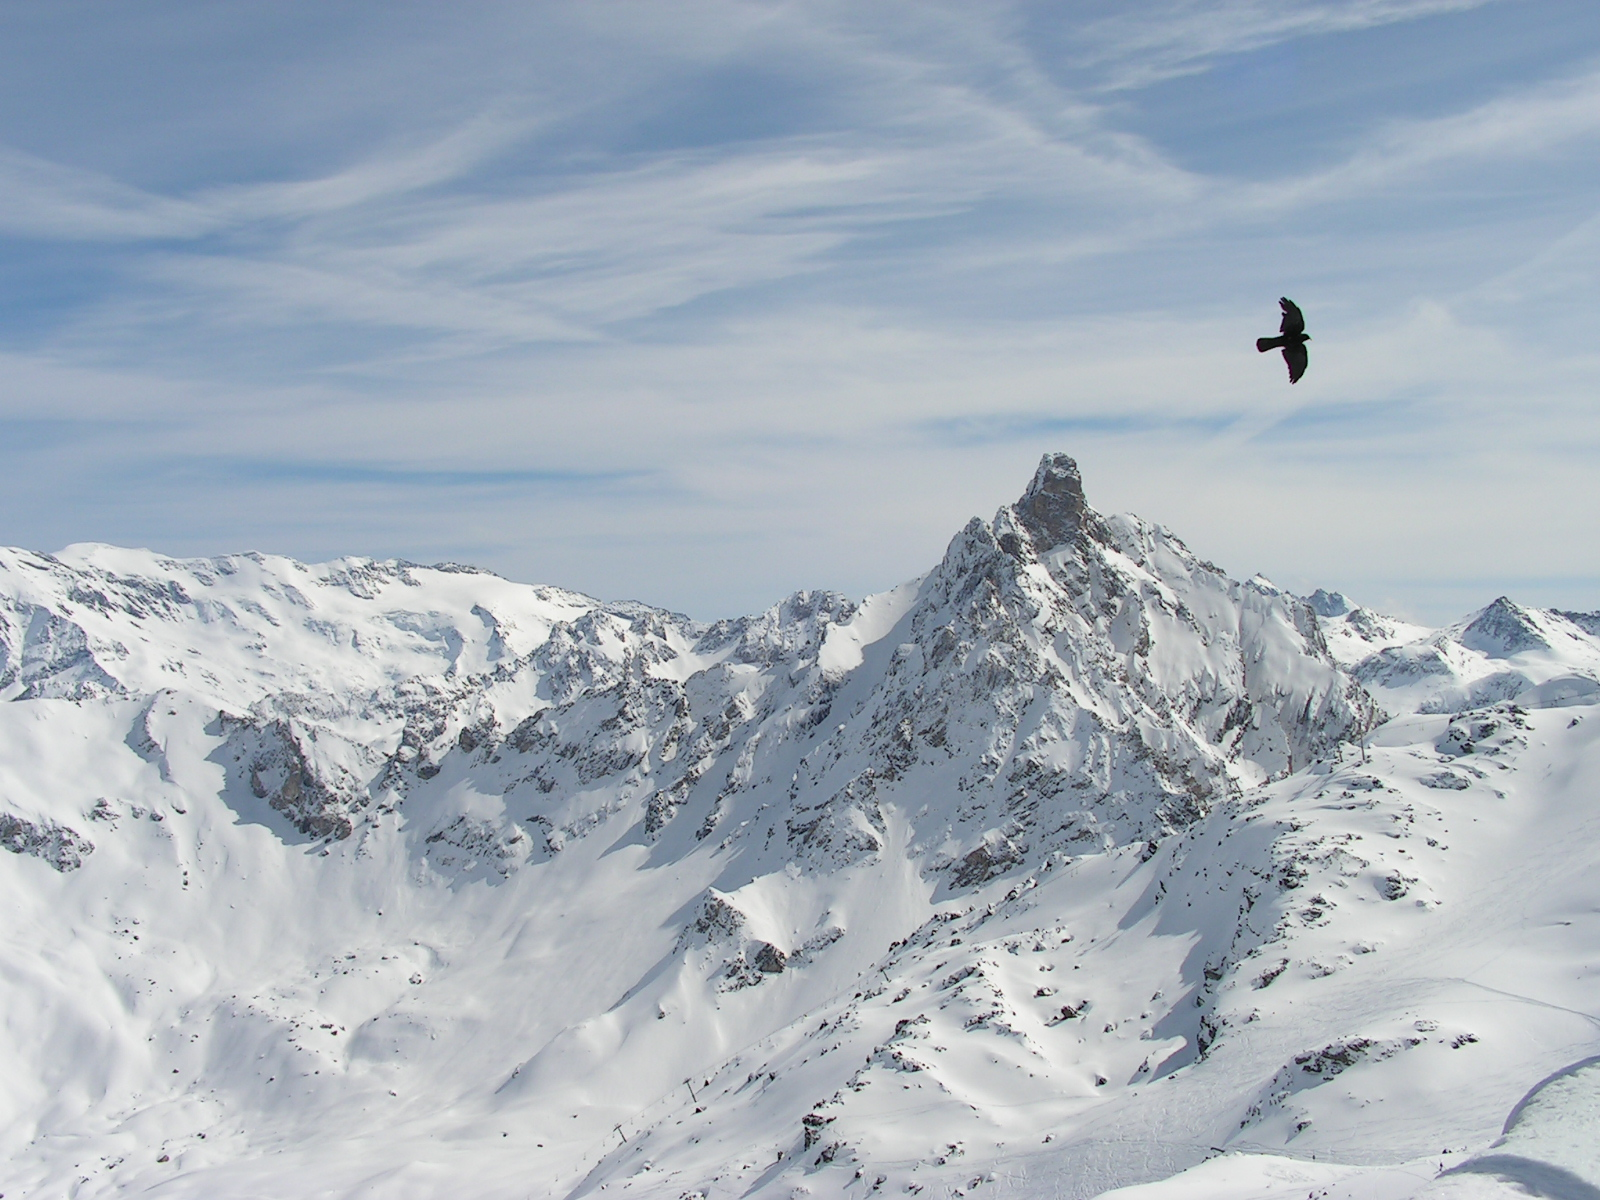 View from Saulire, Courchevel